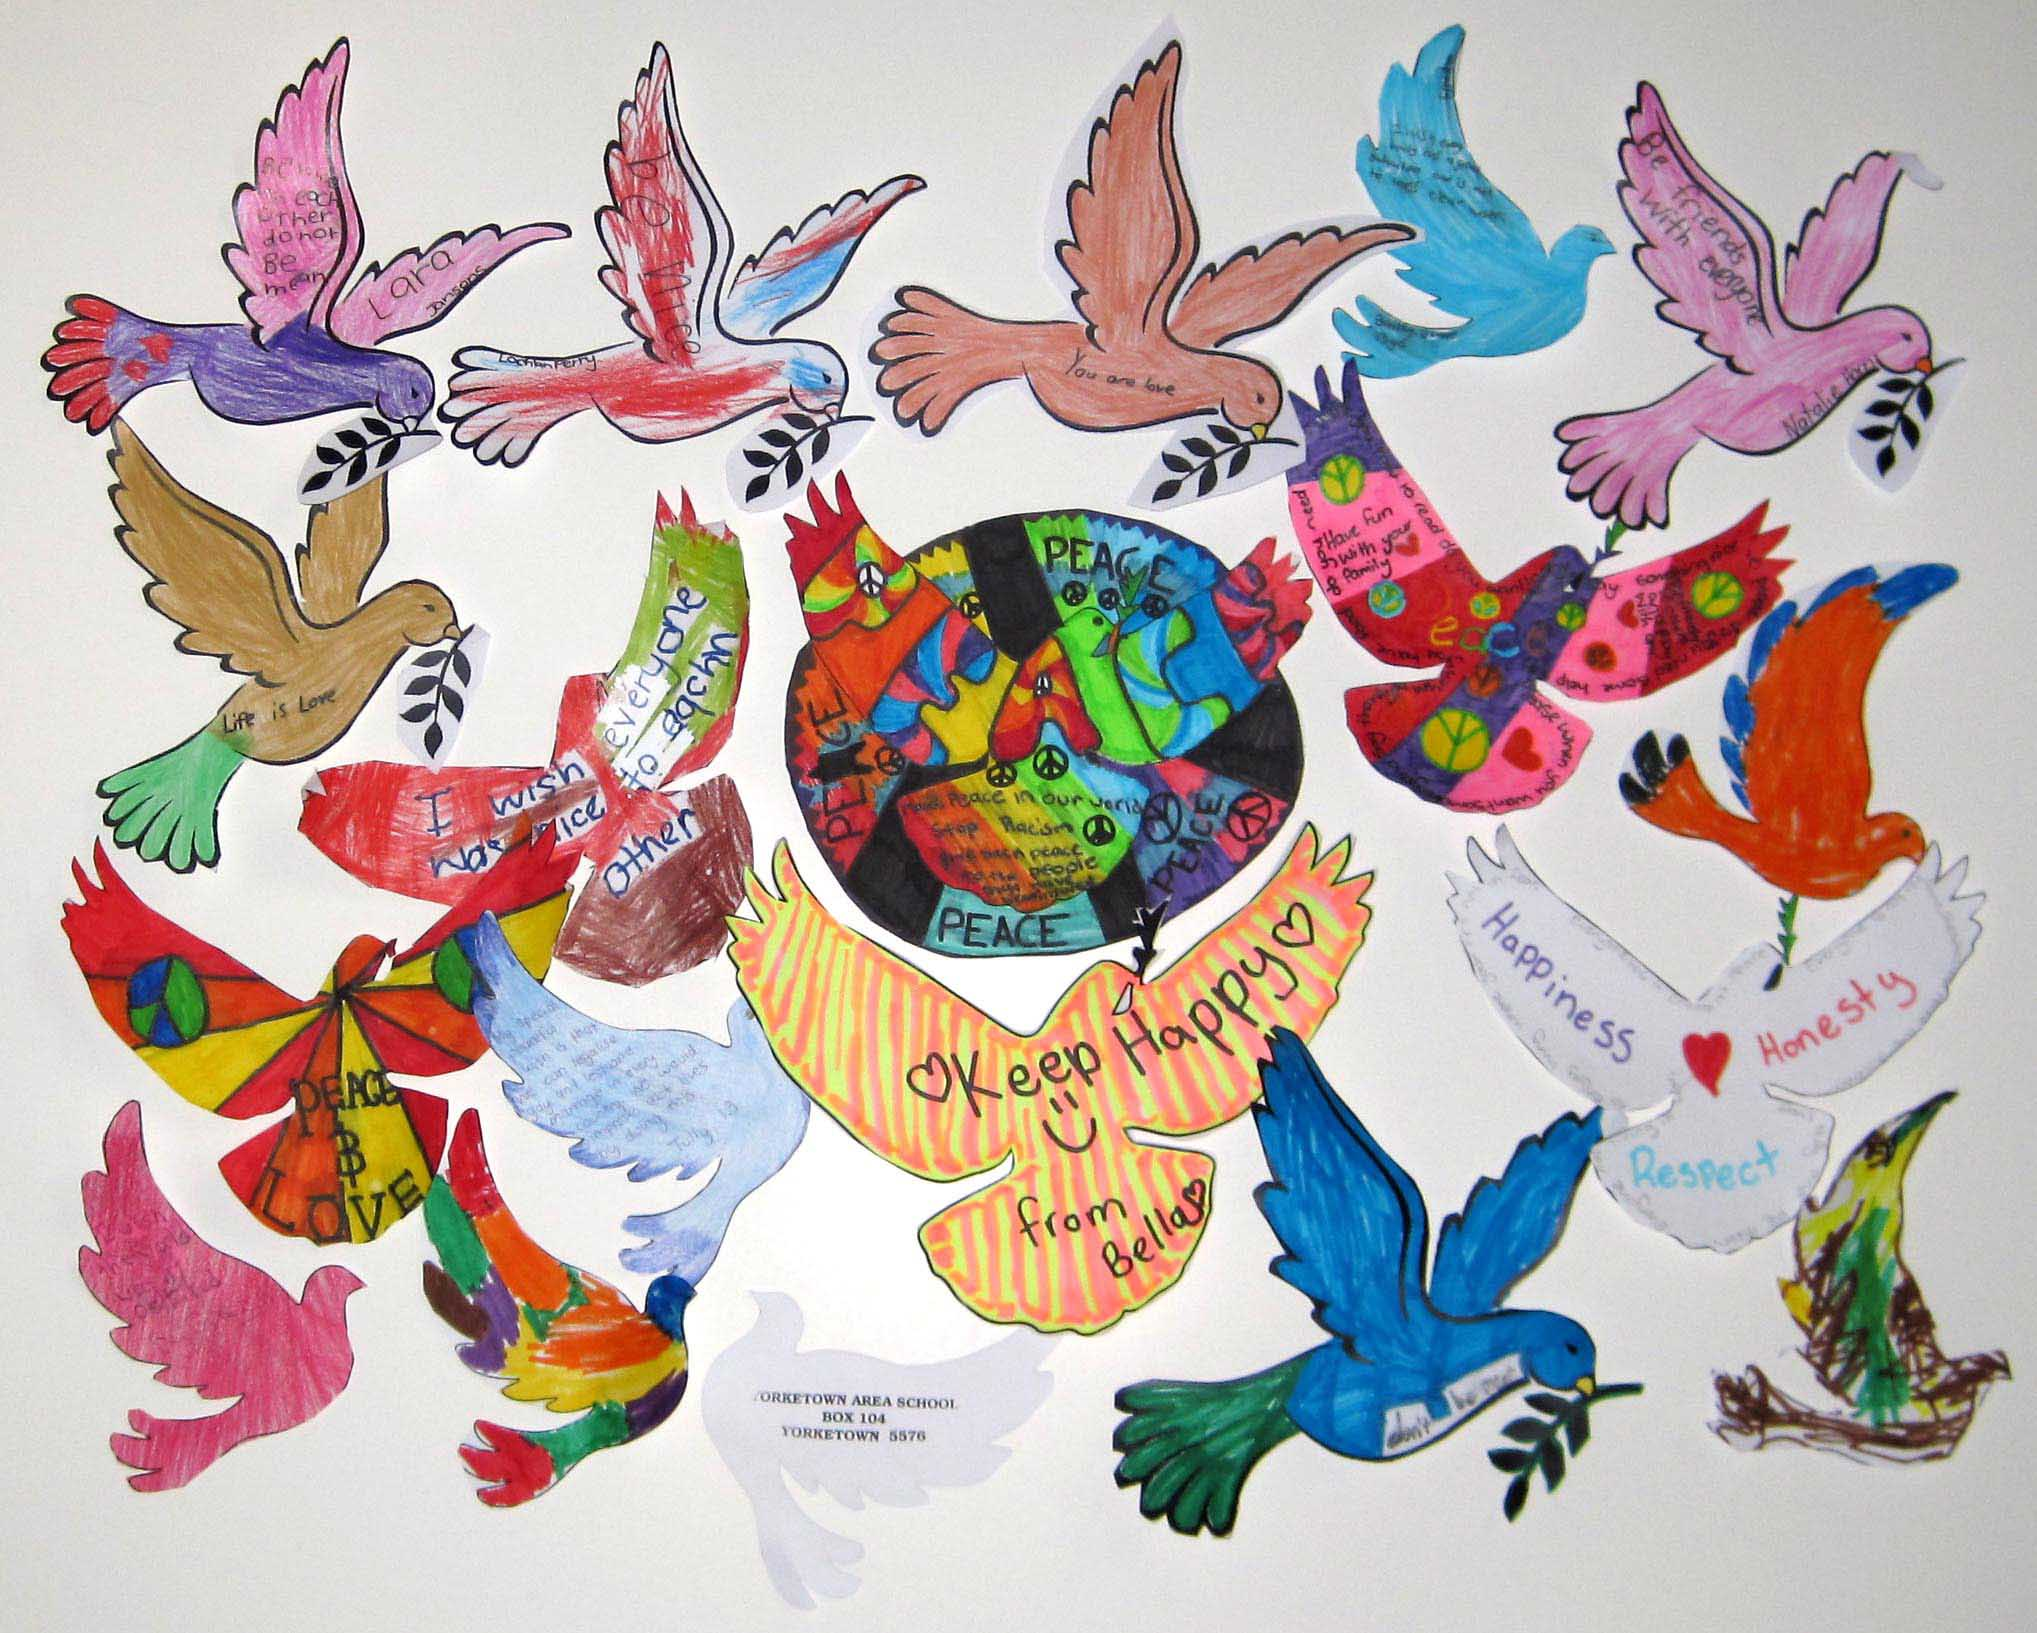 Peace messages from Yorketown Area School